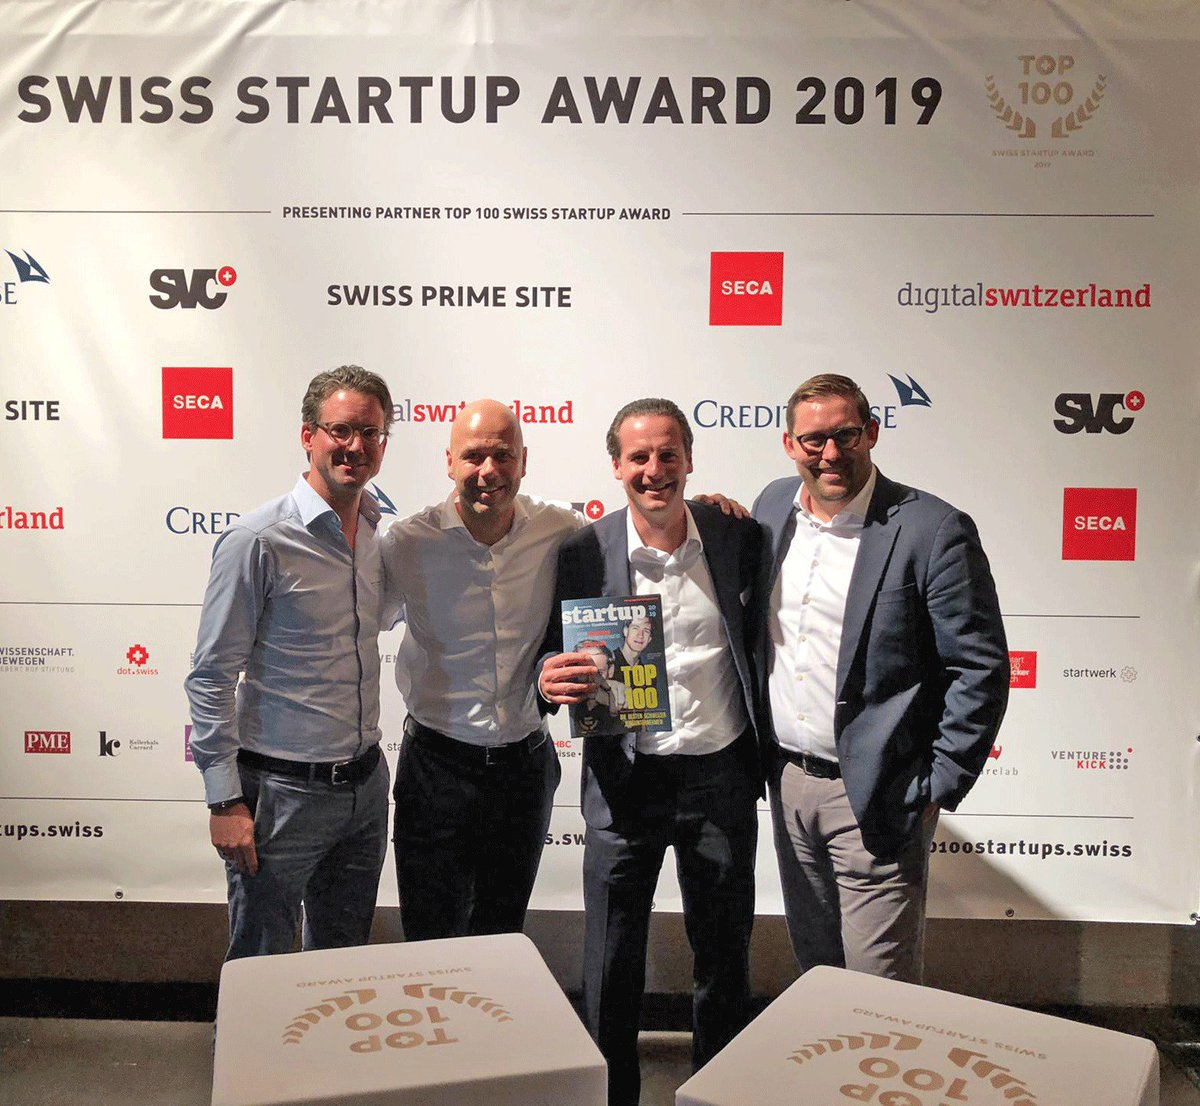 Honoured to be a TOP 100 Swiss Startup! Congratulations to @fly_ability for #1 spot and the other winners! Keep building 🚀 #TOP100SSU #SwissStartups #Fintech #Cryptofinance @JanBrzezek @PirroMorandi @marcpbernegger @venturelab_ch